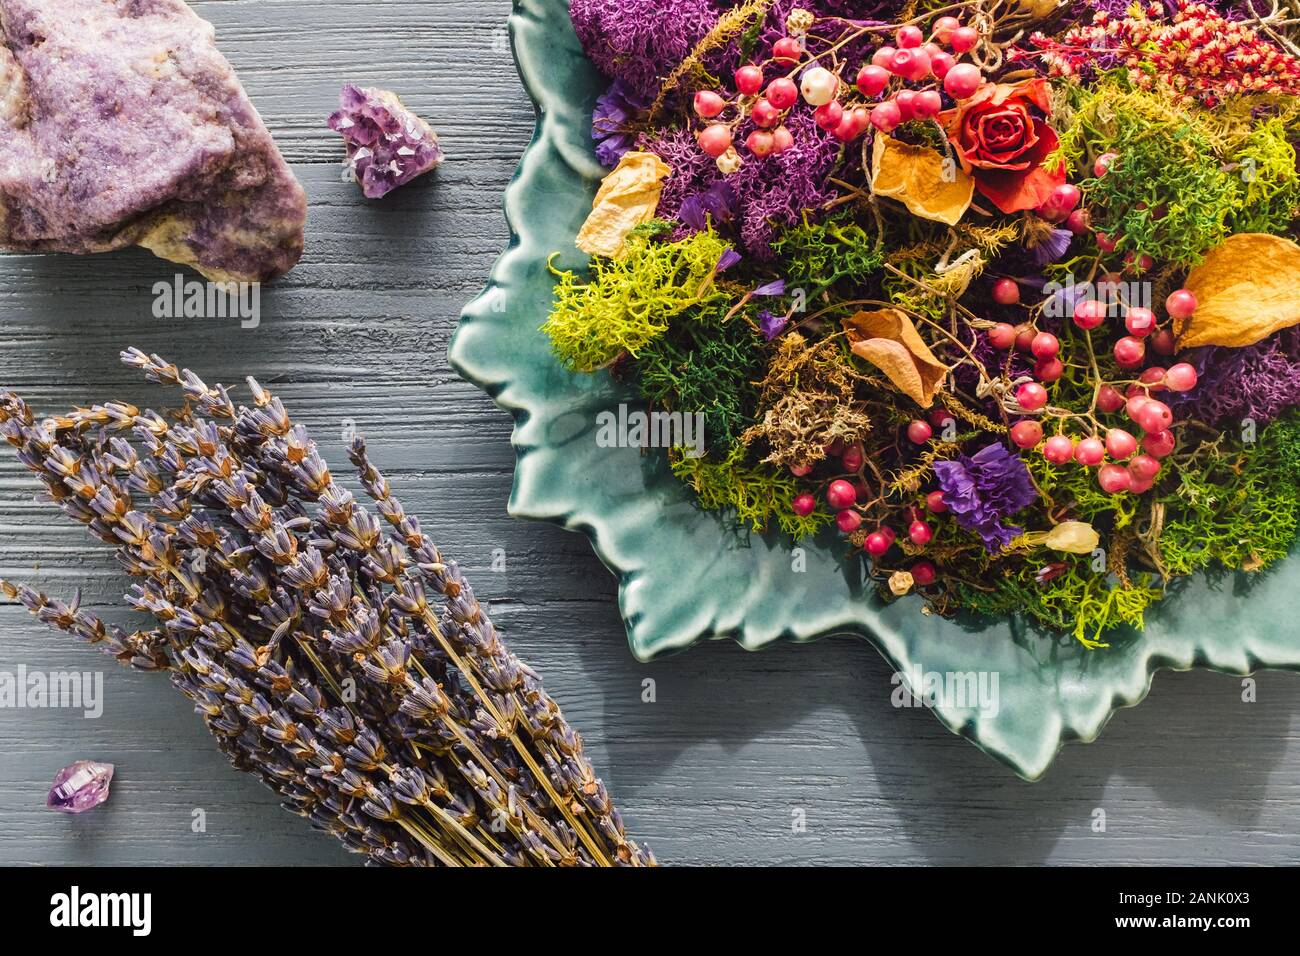 Plate of Dried Botanicals with Lepidolite and Amethyst Crystals Stock Photo